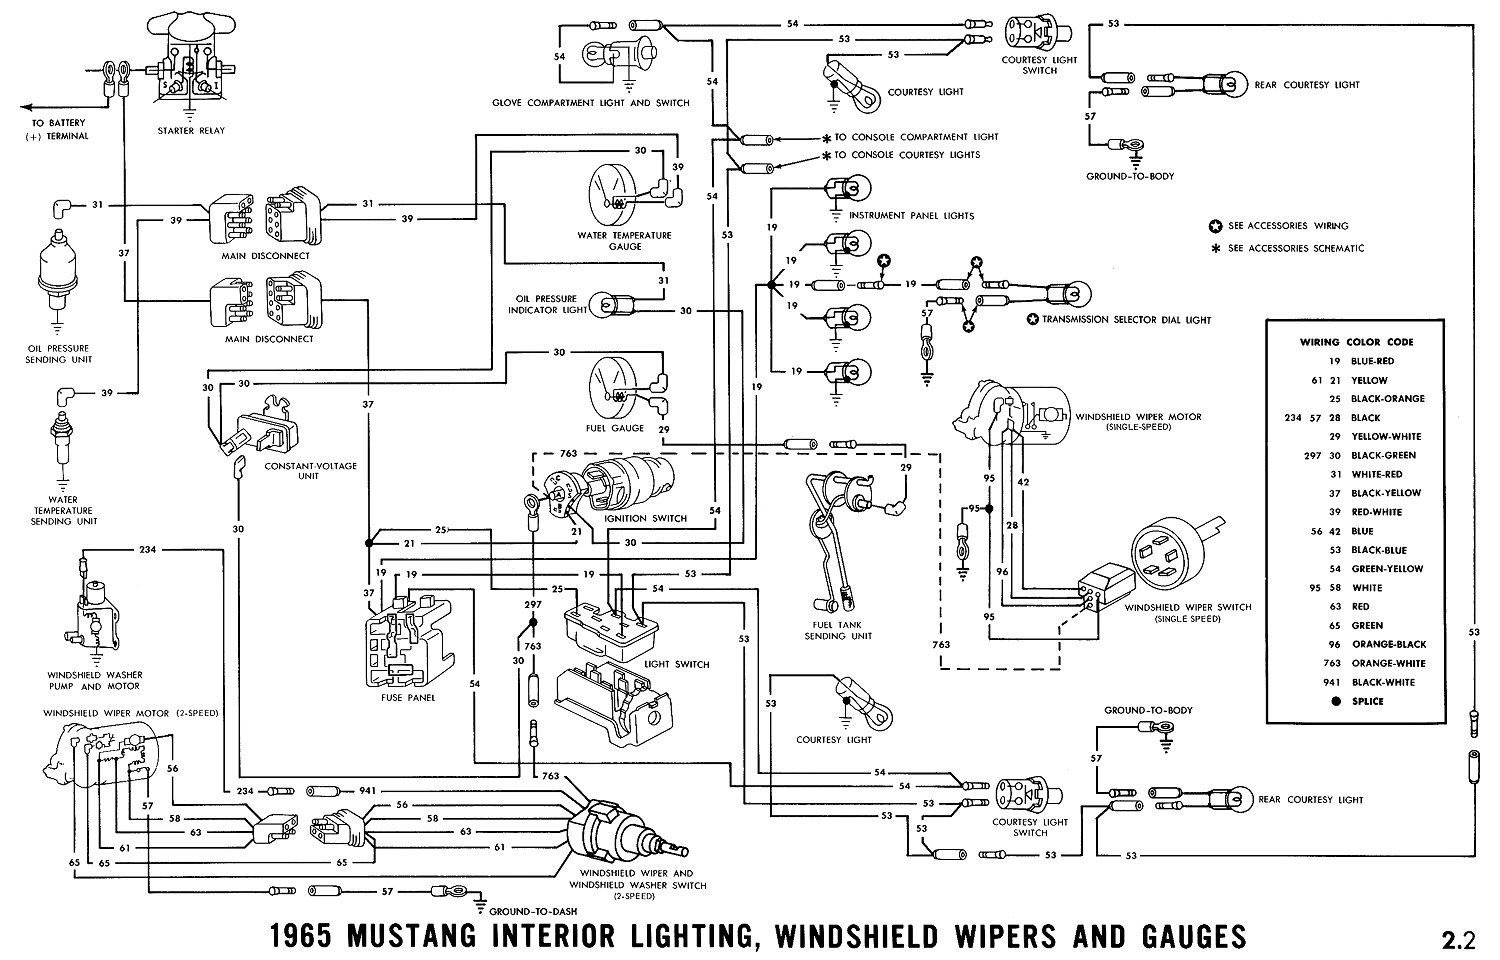 1965 Mustang Wiring Diagrams Average Joe Restoration Car Meter Diagram Oil Pressure